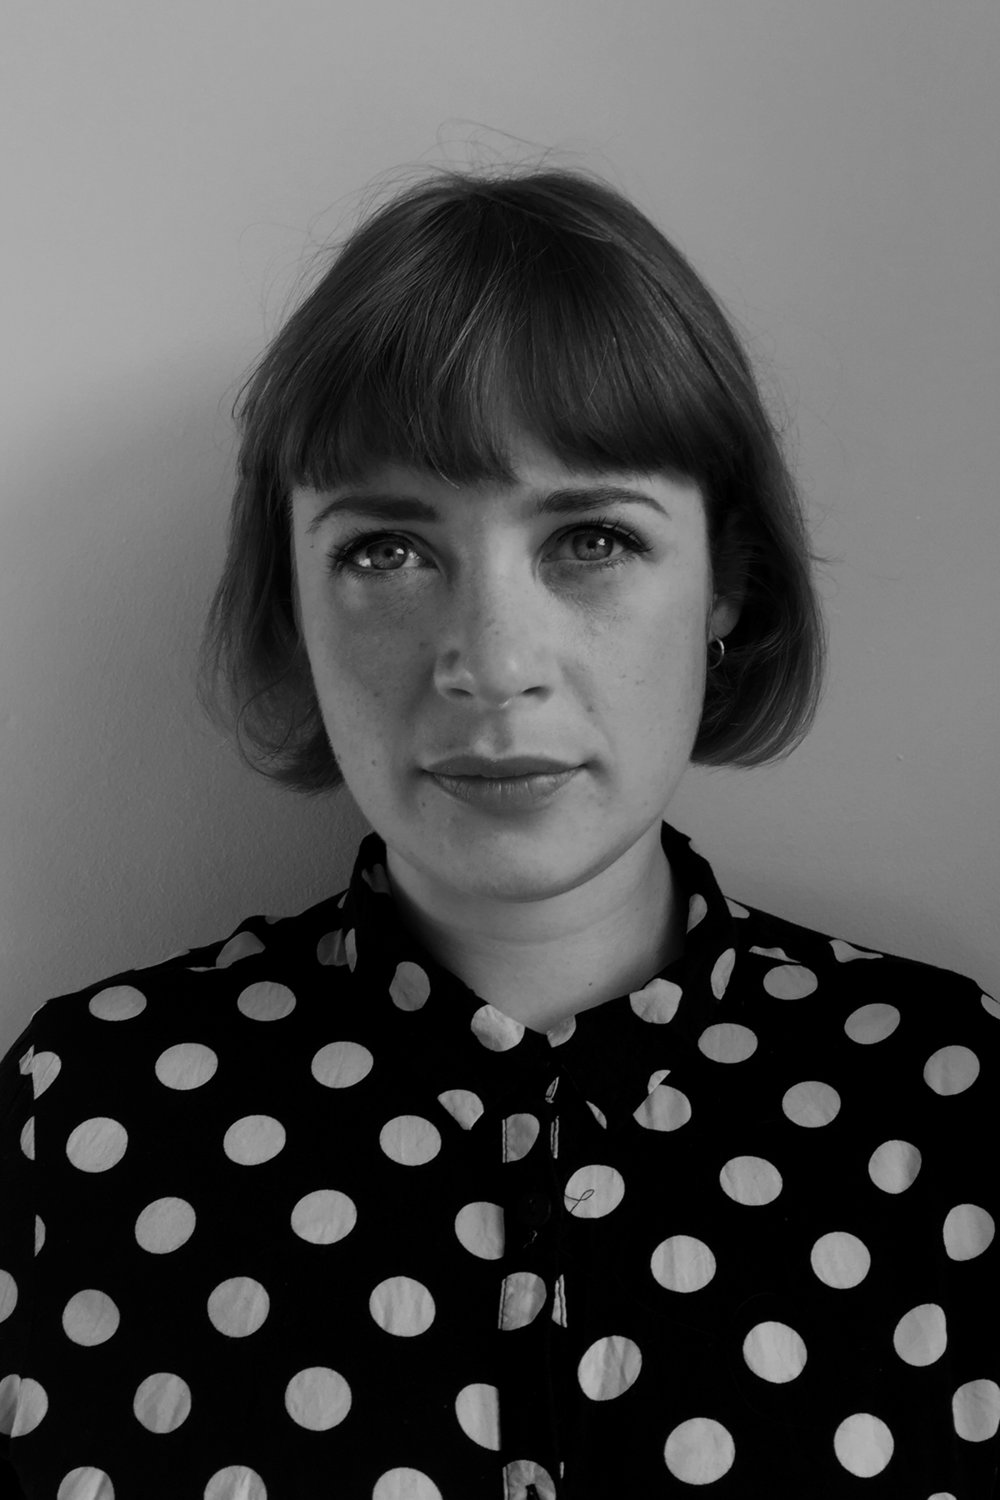 lydia black and white (600dpi).jpg